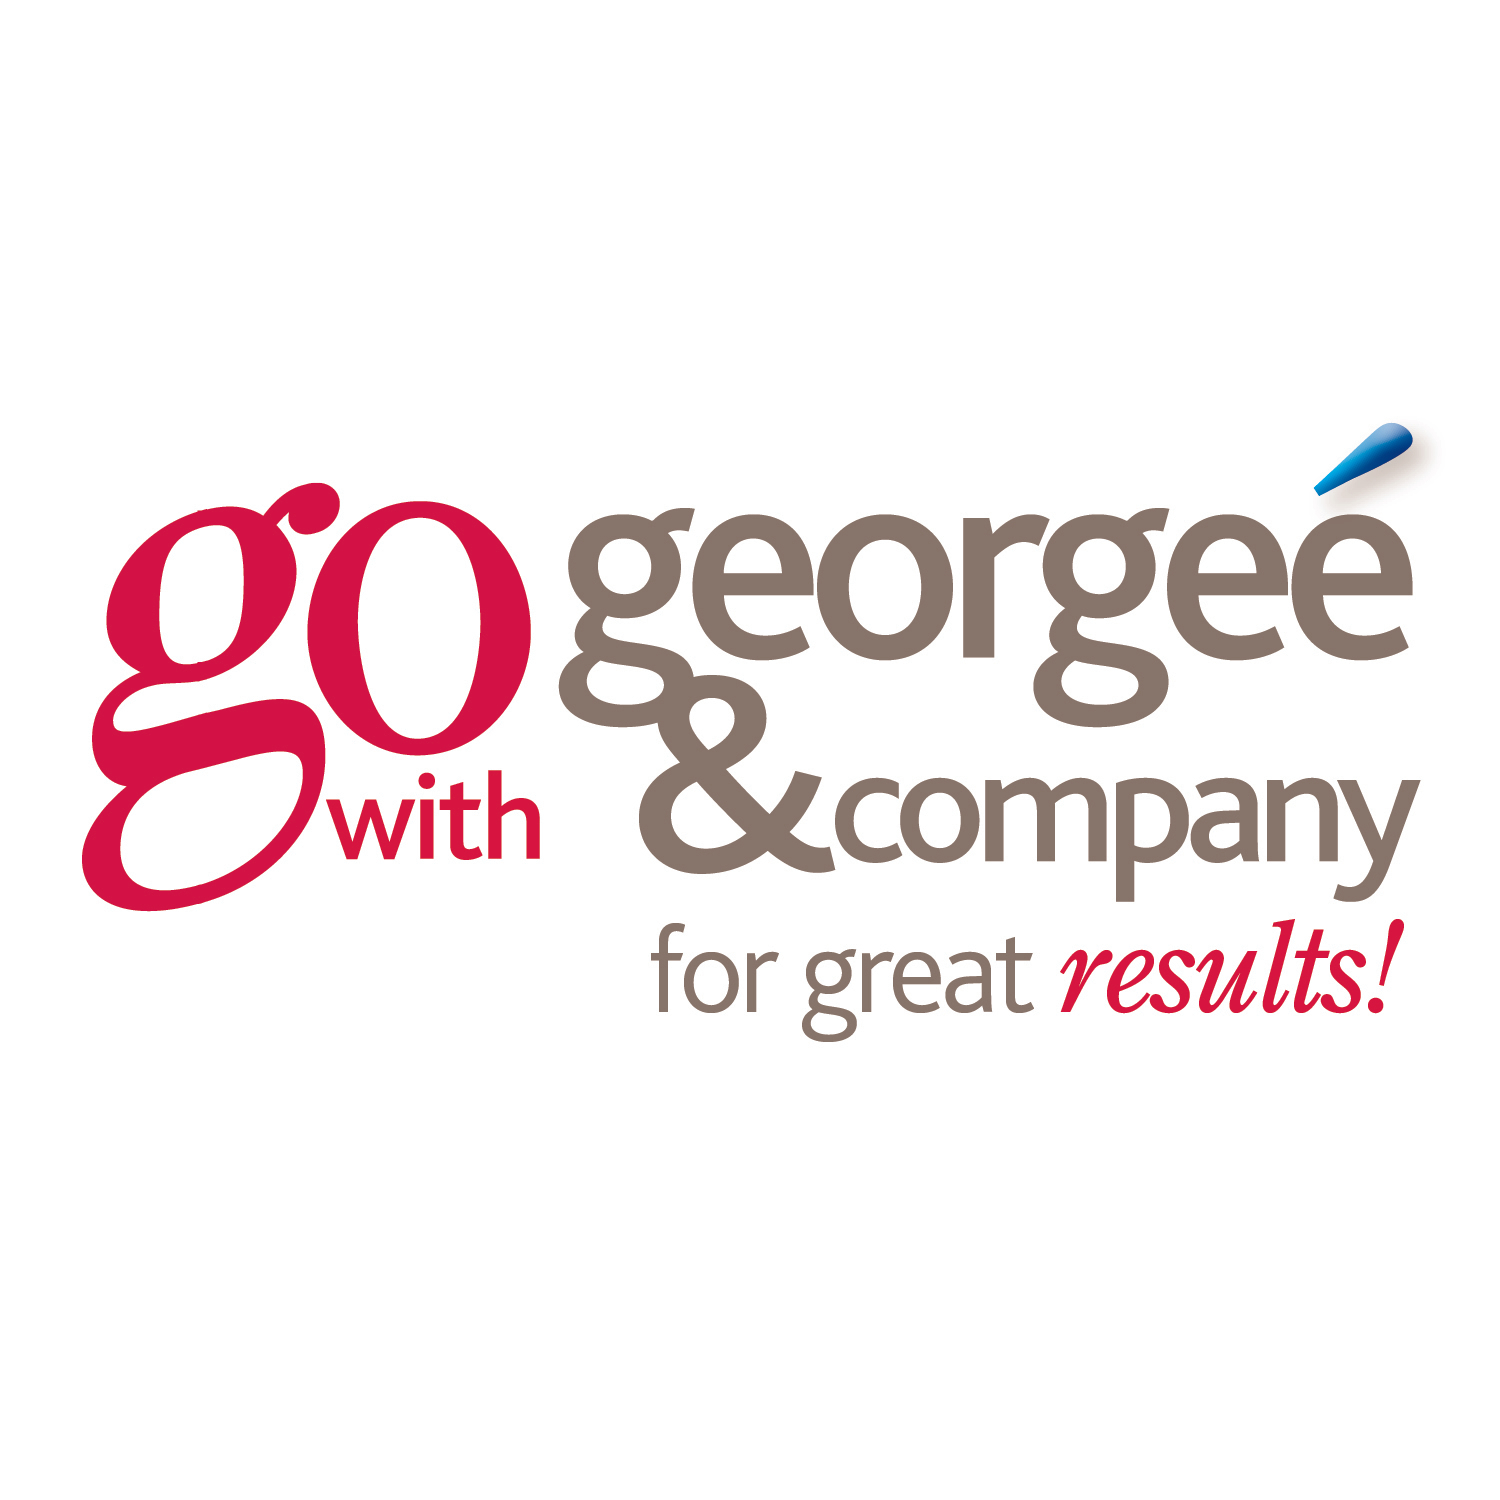 Georgee & Company Keller Williams Realty